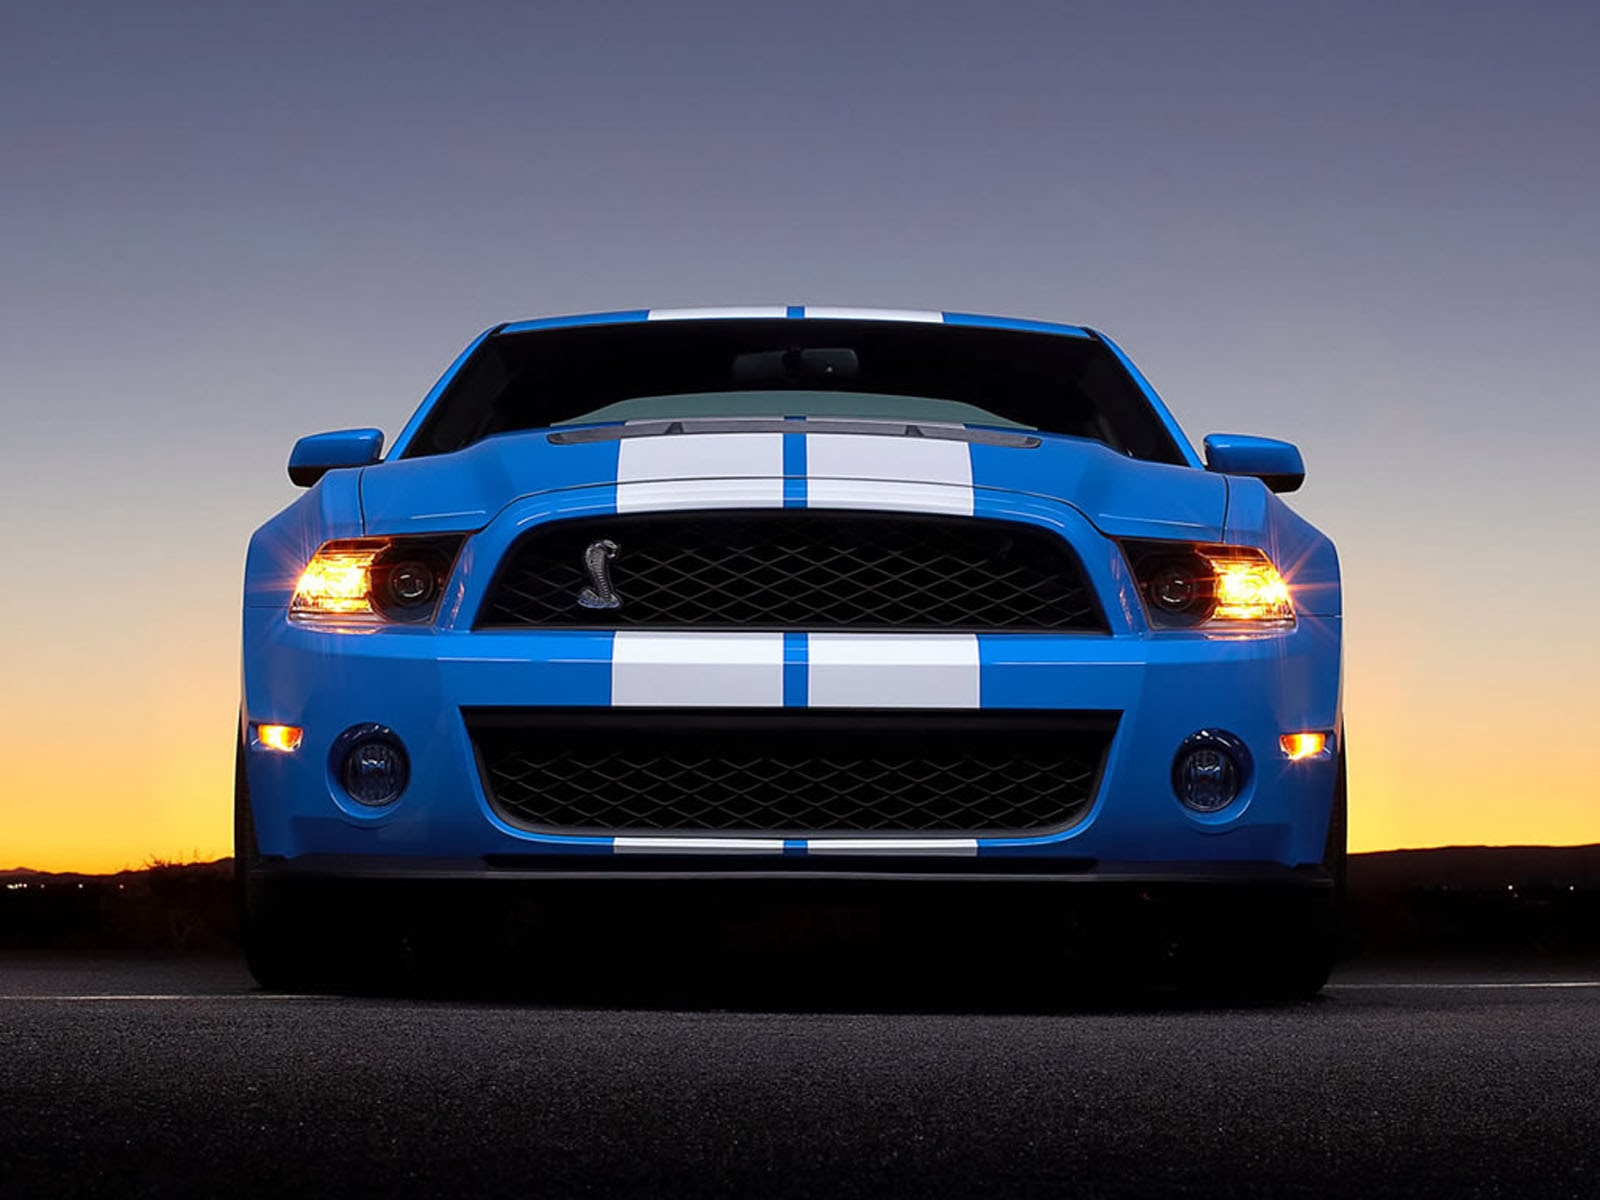 Cute Baby Hd Wallpaper Ford Mustang Shelby Gt500 Car Wallpapers